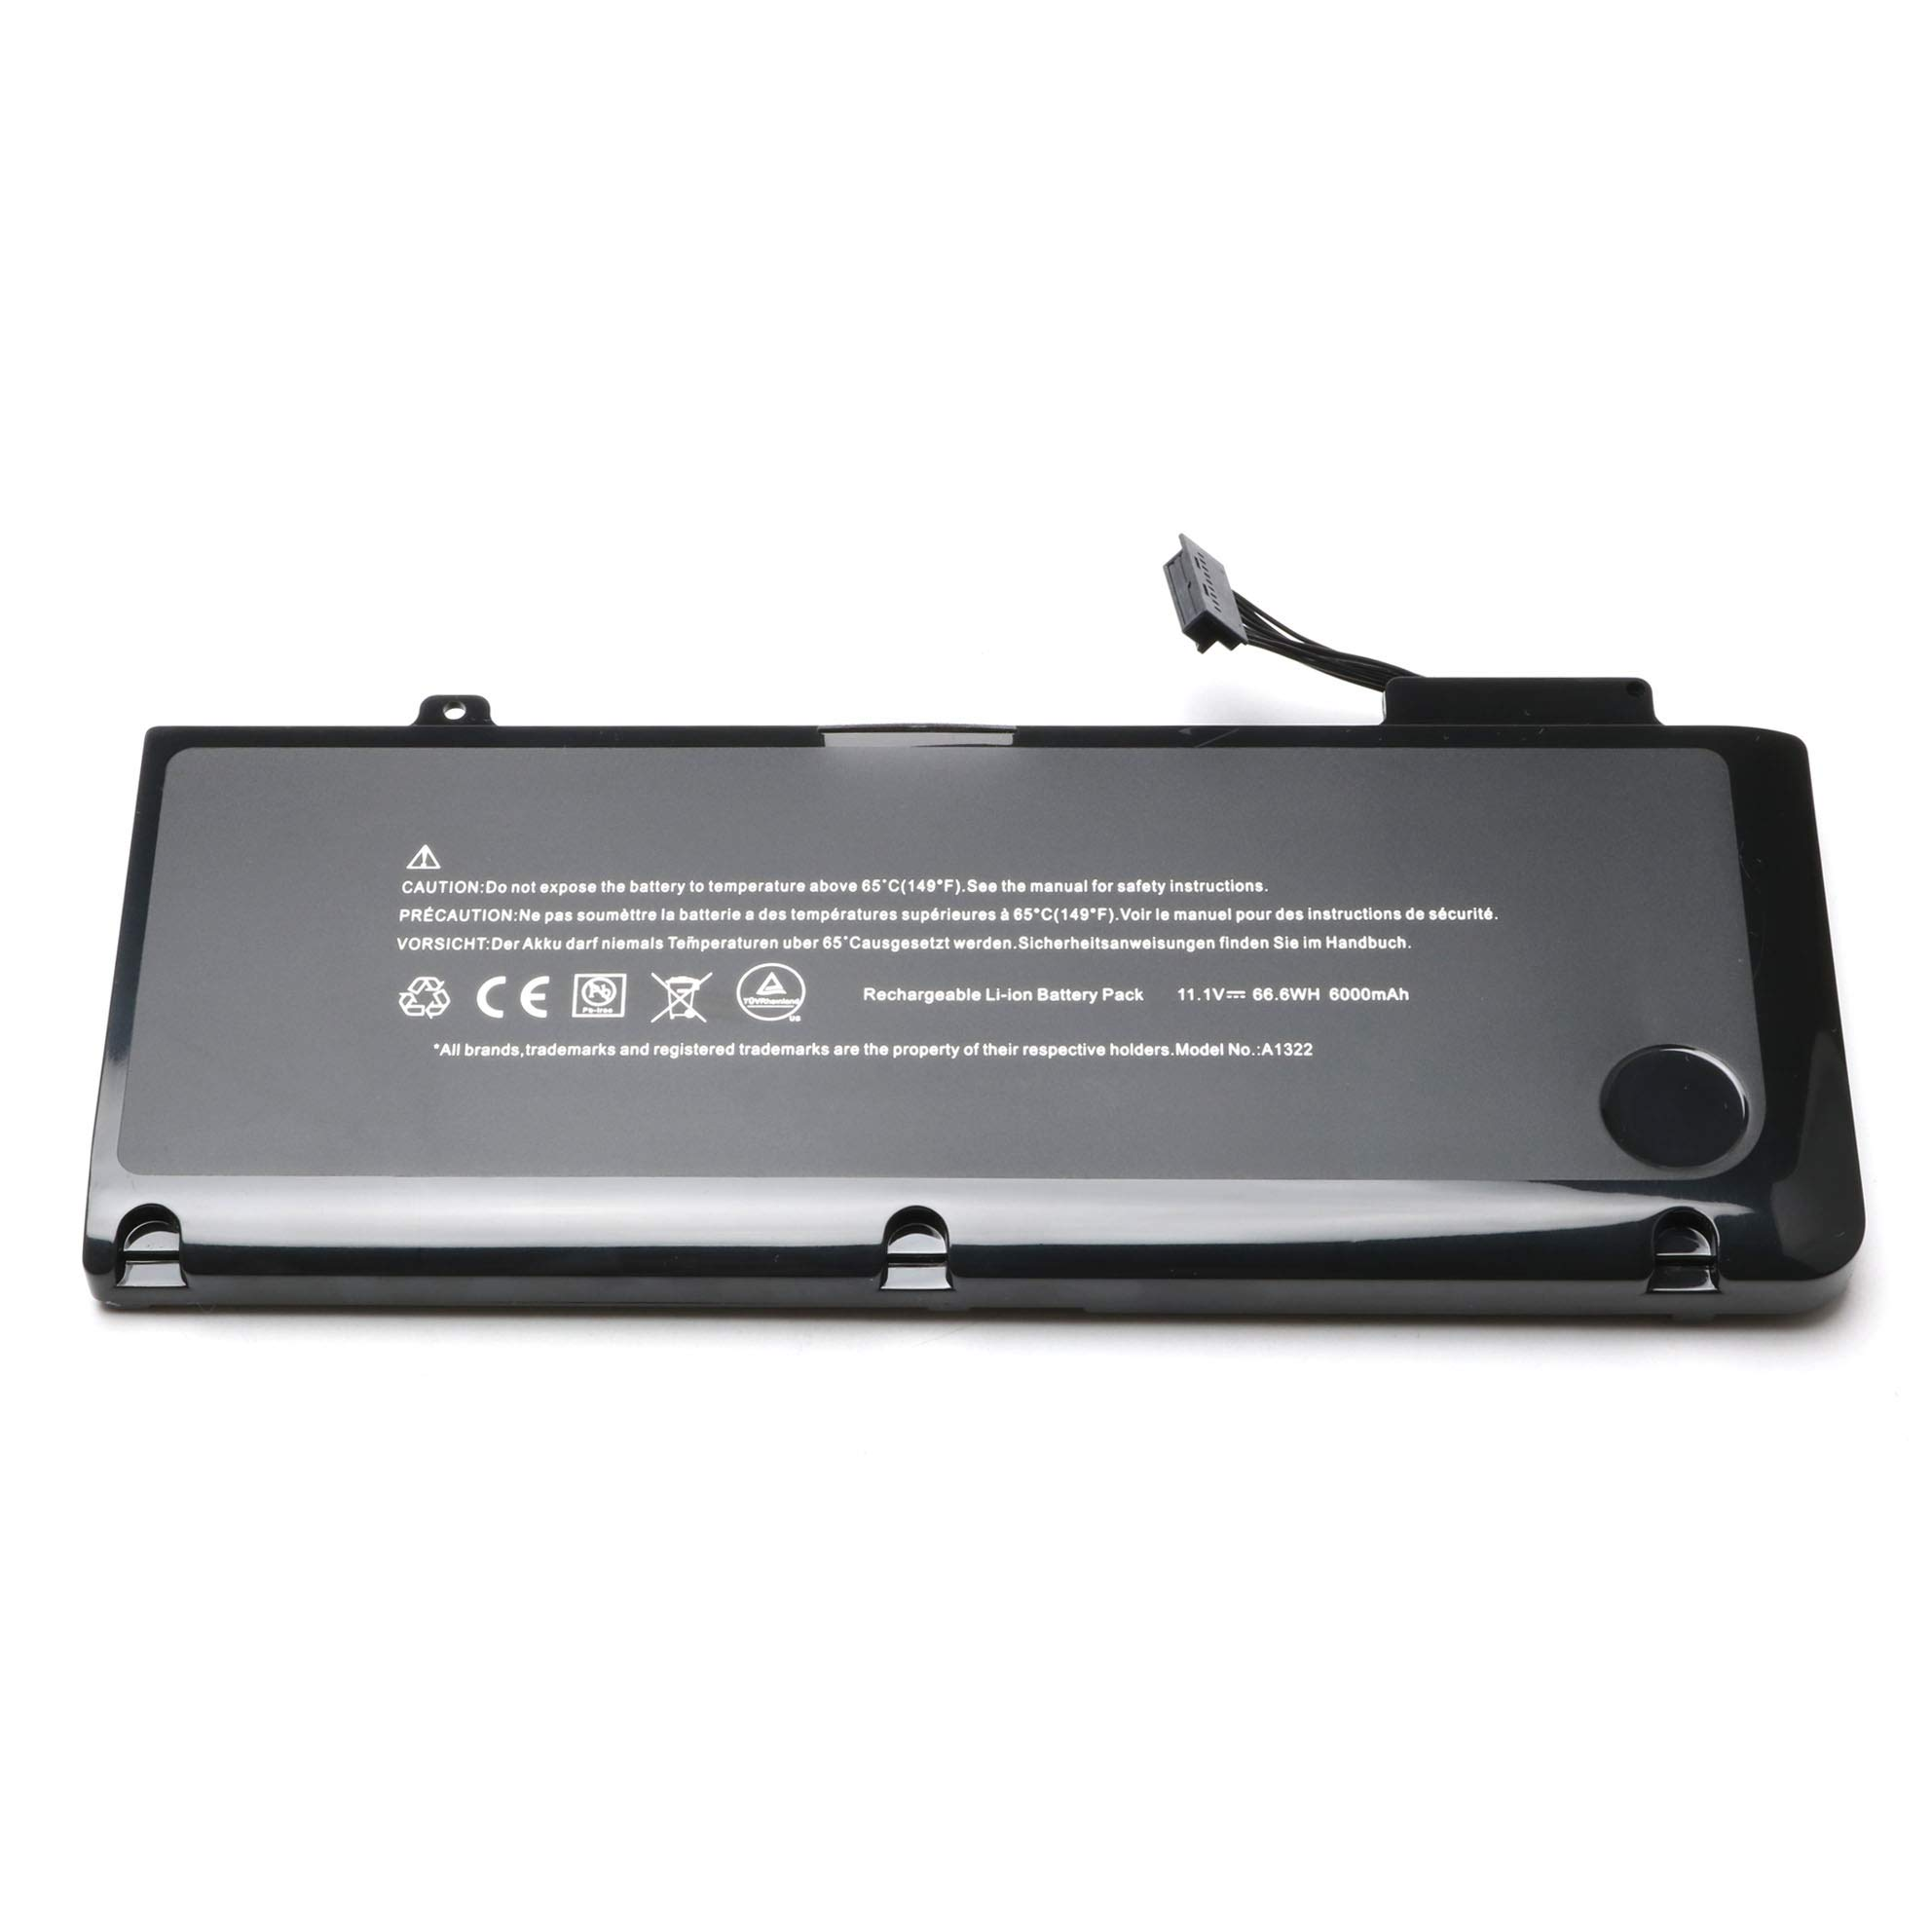 A1322 New Laptop Battery for MacBook Pro 13'' A1322 A1278 (Mid 2009,Mid 2010,Early 2011,Late 2011,Mid 2012);661-5229 020-6547-A 661-5557 MB990LL/A MB991LL/A MC374LL/A MC700LL/A --12 Months Warranty by WENYAA (Image #2)